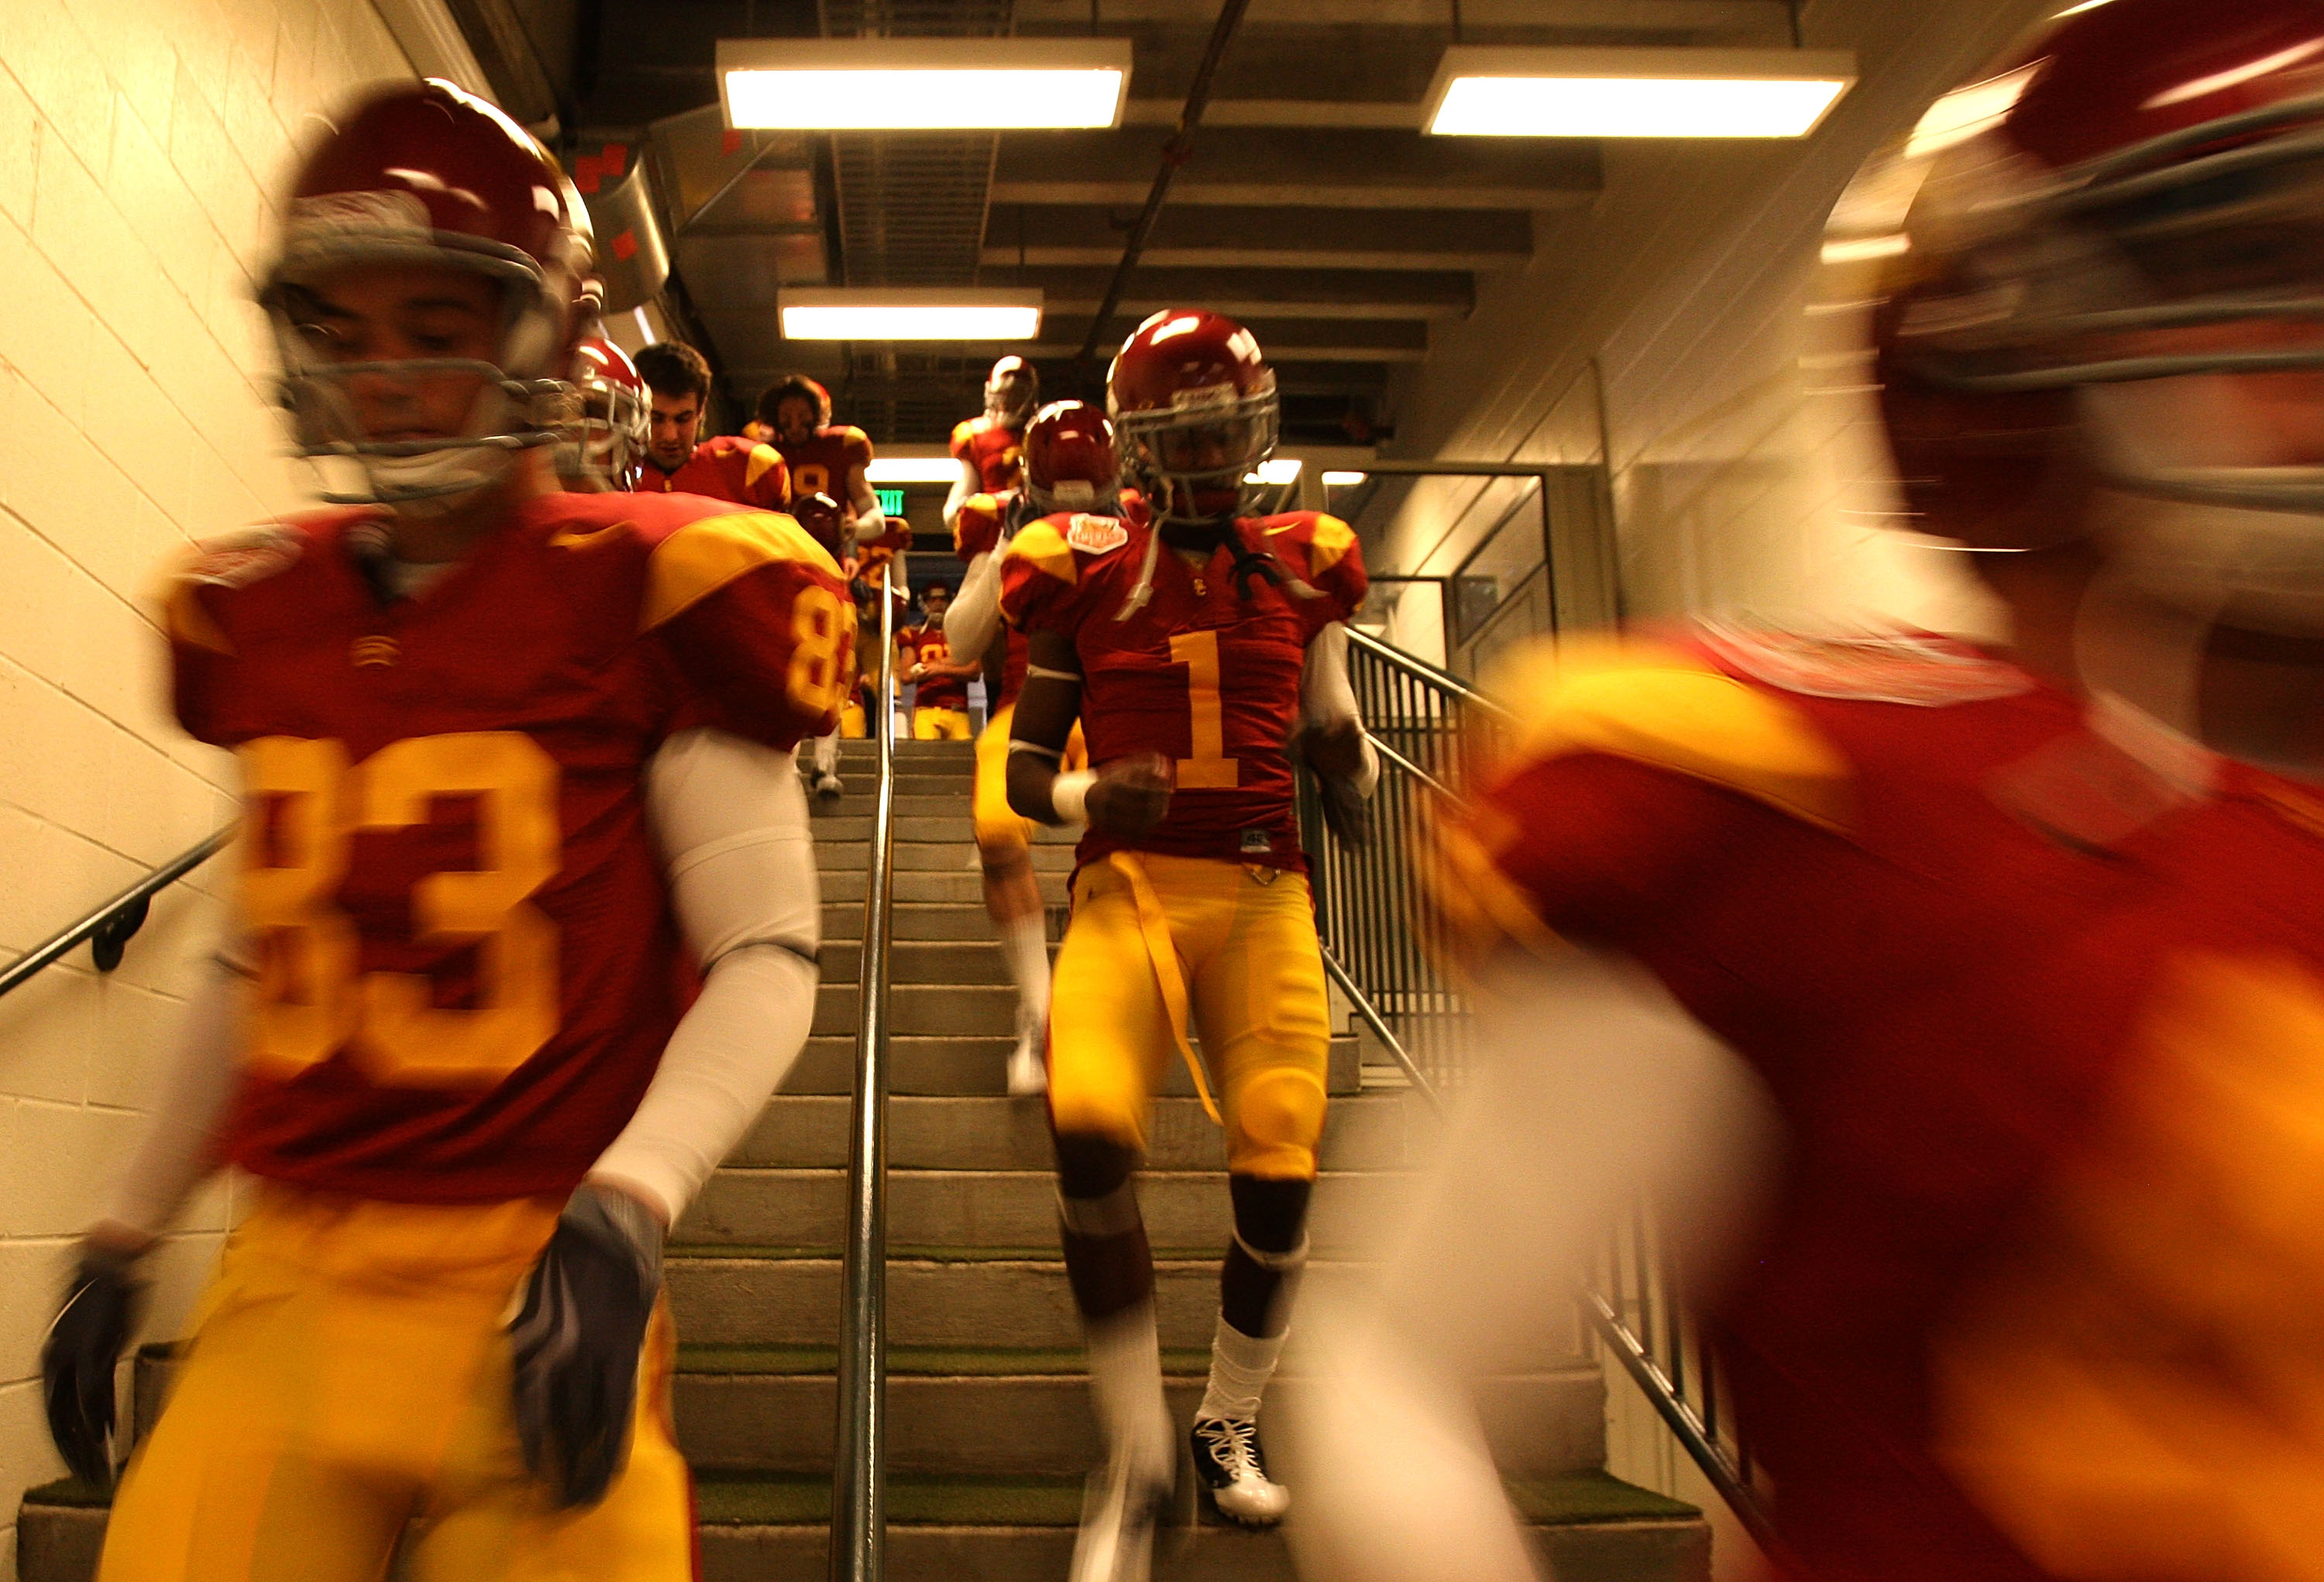 SAN FRANCISCO - DECEMBER 26: The USC Trojans enter the field against the Boston College Eagles during the 2009 Emerald Bowl at AT&T Park on December 26, 2009 in San Francisco, California. (Photo by Jed Jacobsohn/Getty Images)